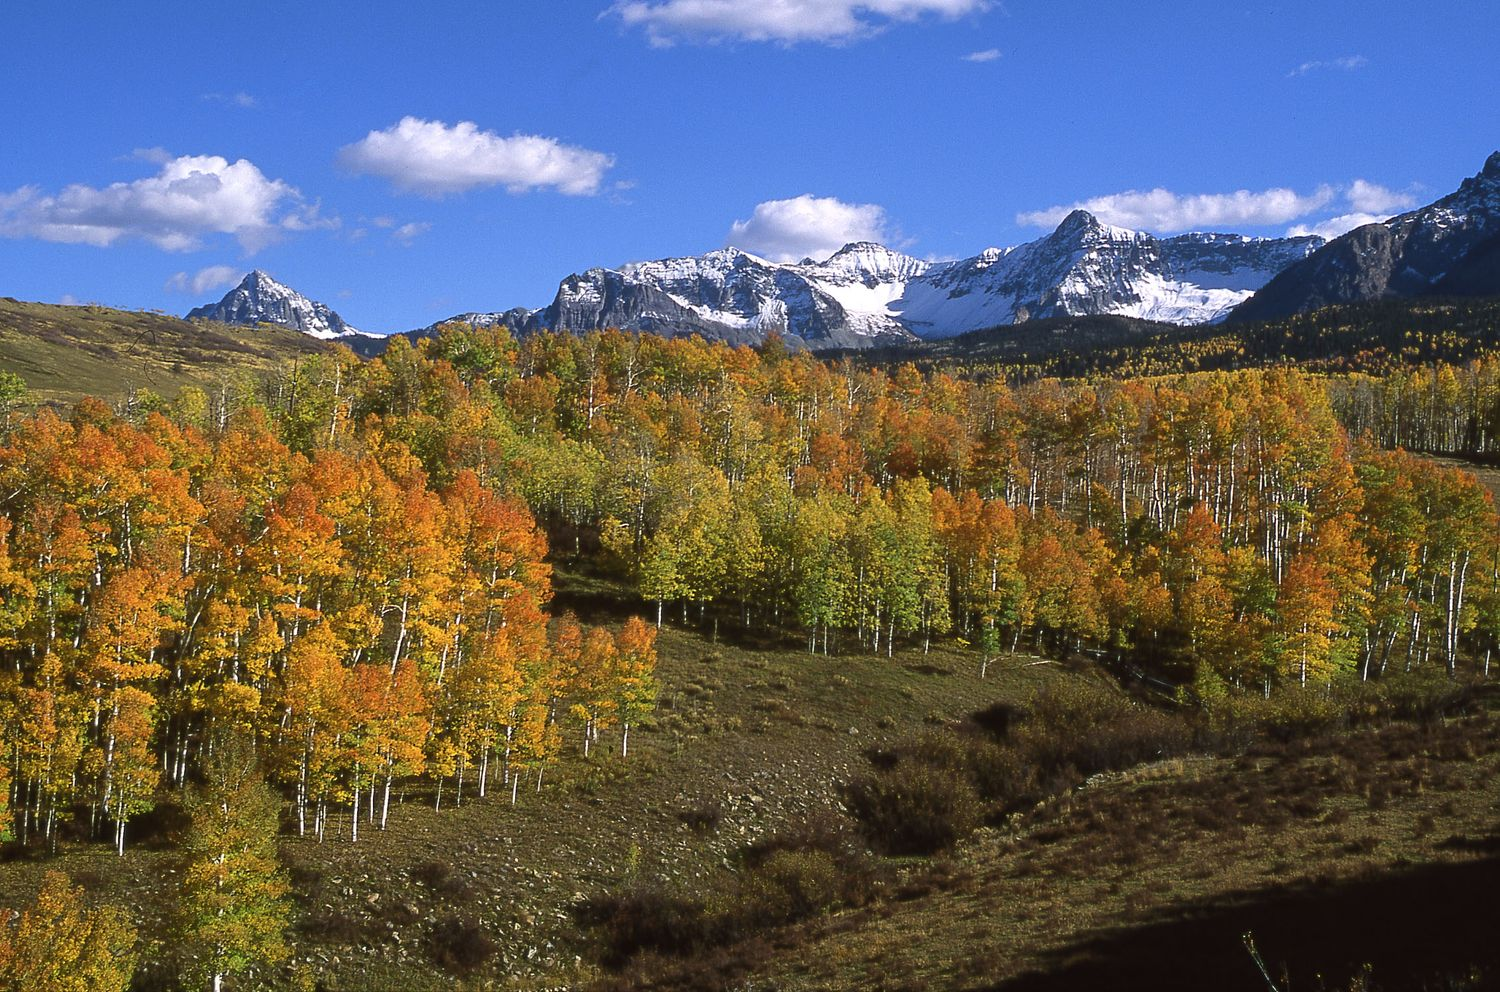 summit county Choose from 1002 summit county hotels with huge savings summit county is known for its mountain views, lakeside setting and beer don't miss out on great hotels near keystone ski resort and copper mountain ski resort.